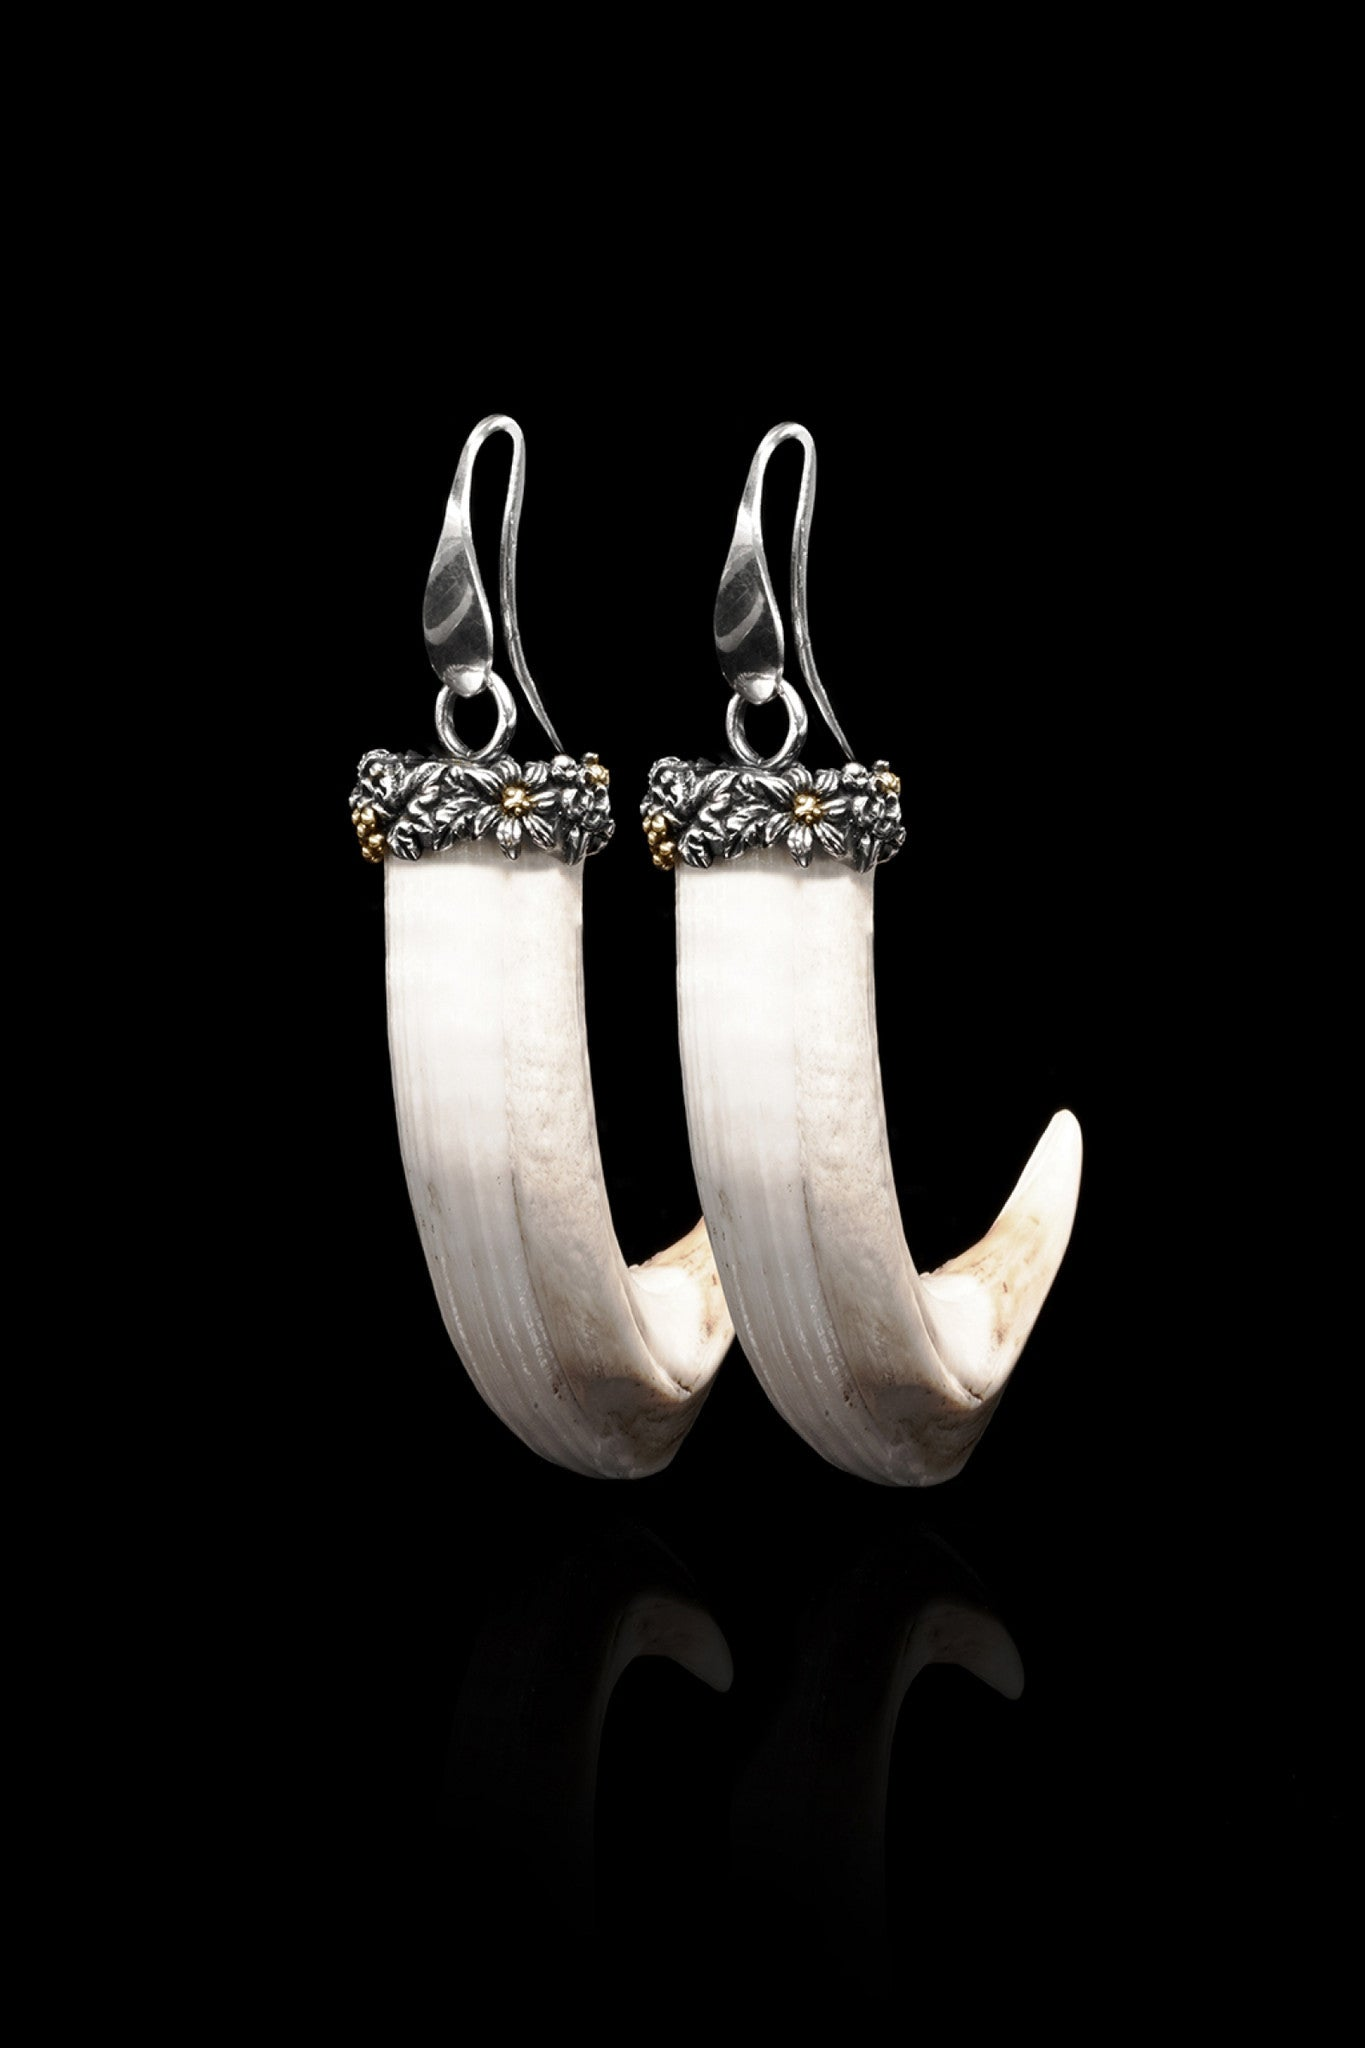 Ugo Cacciatori, Gold, Jewelry, 9kt Gold + Sterling Silver, Earrings, Wild Boar Tusk